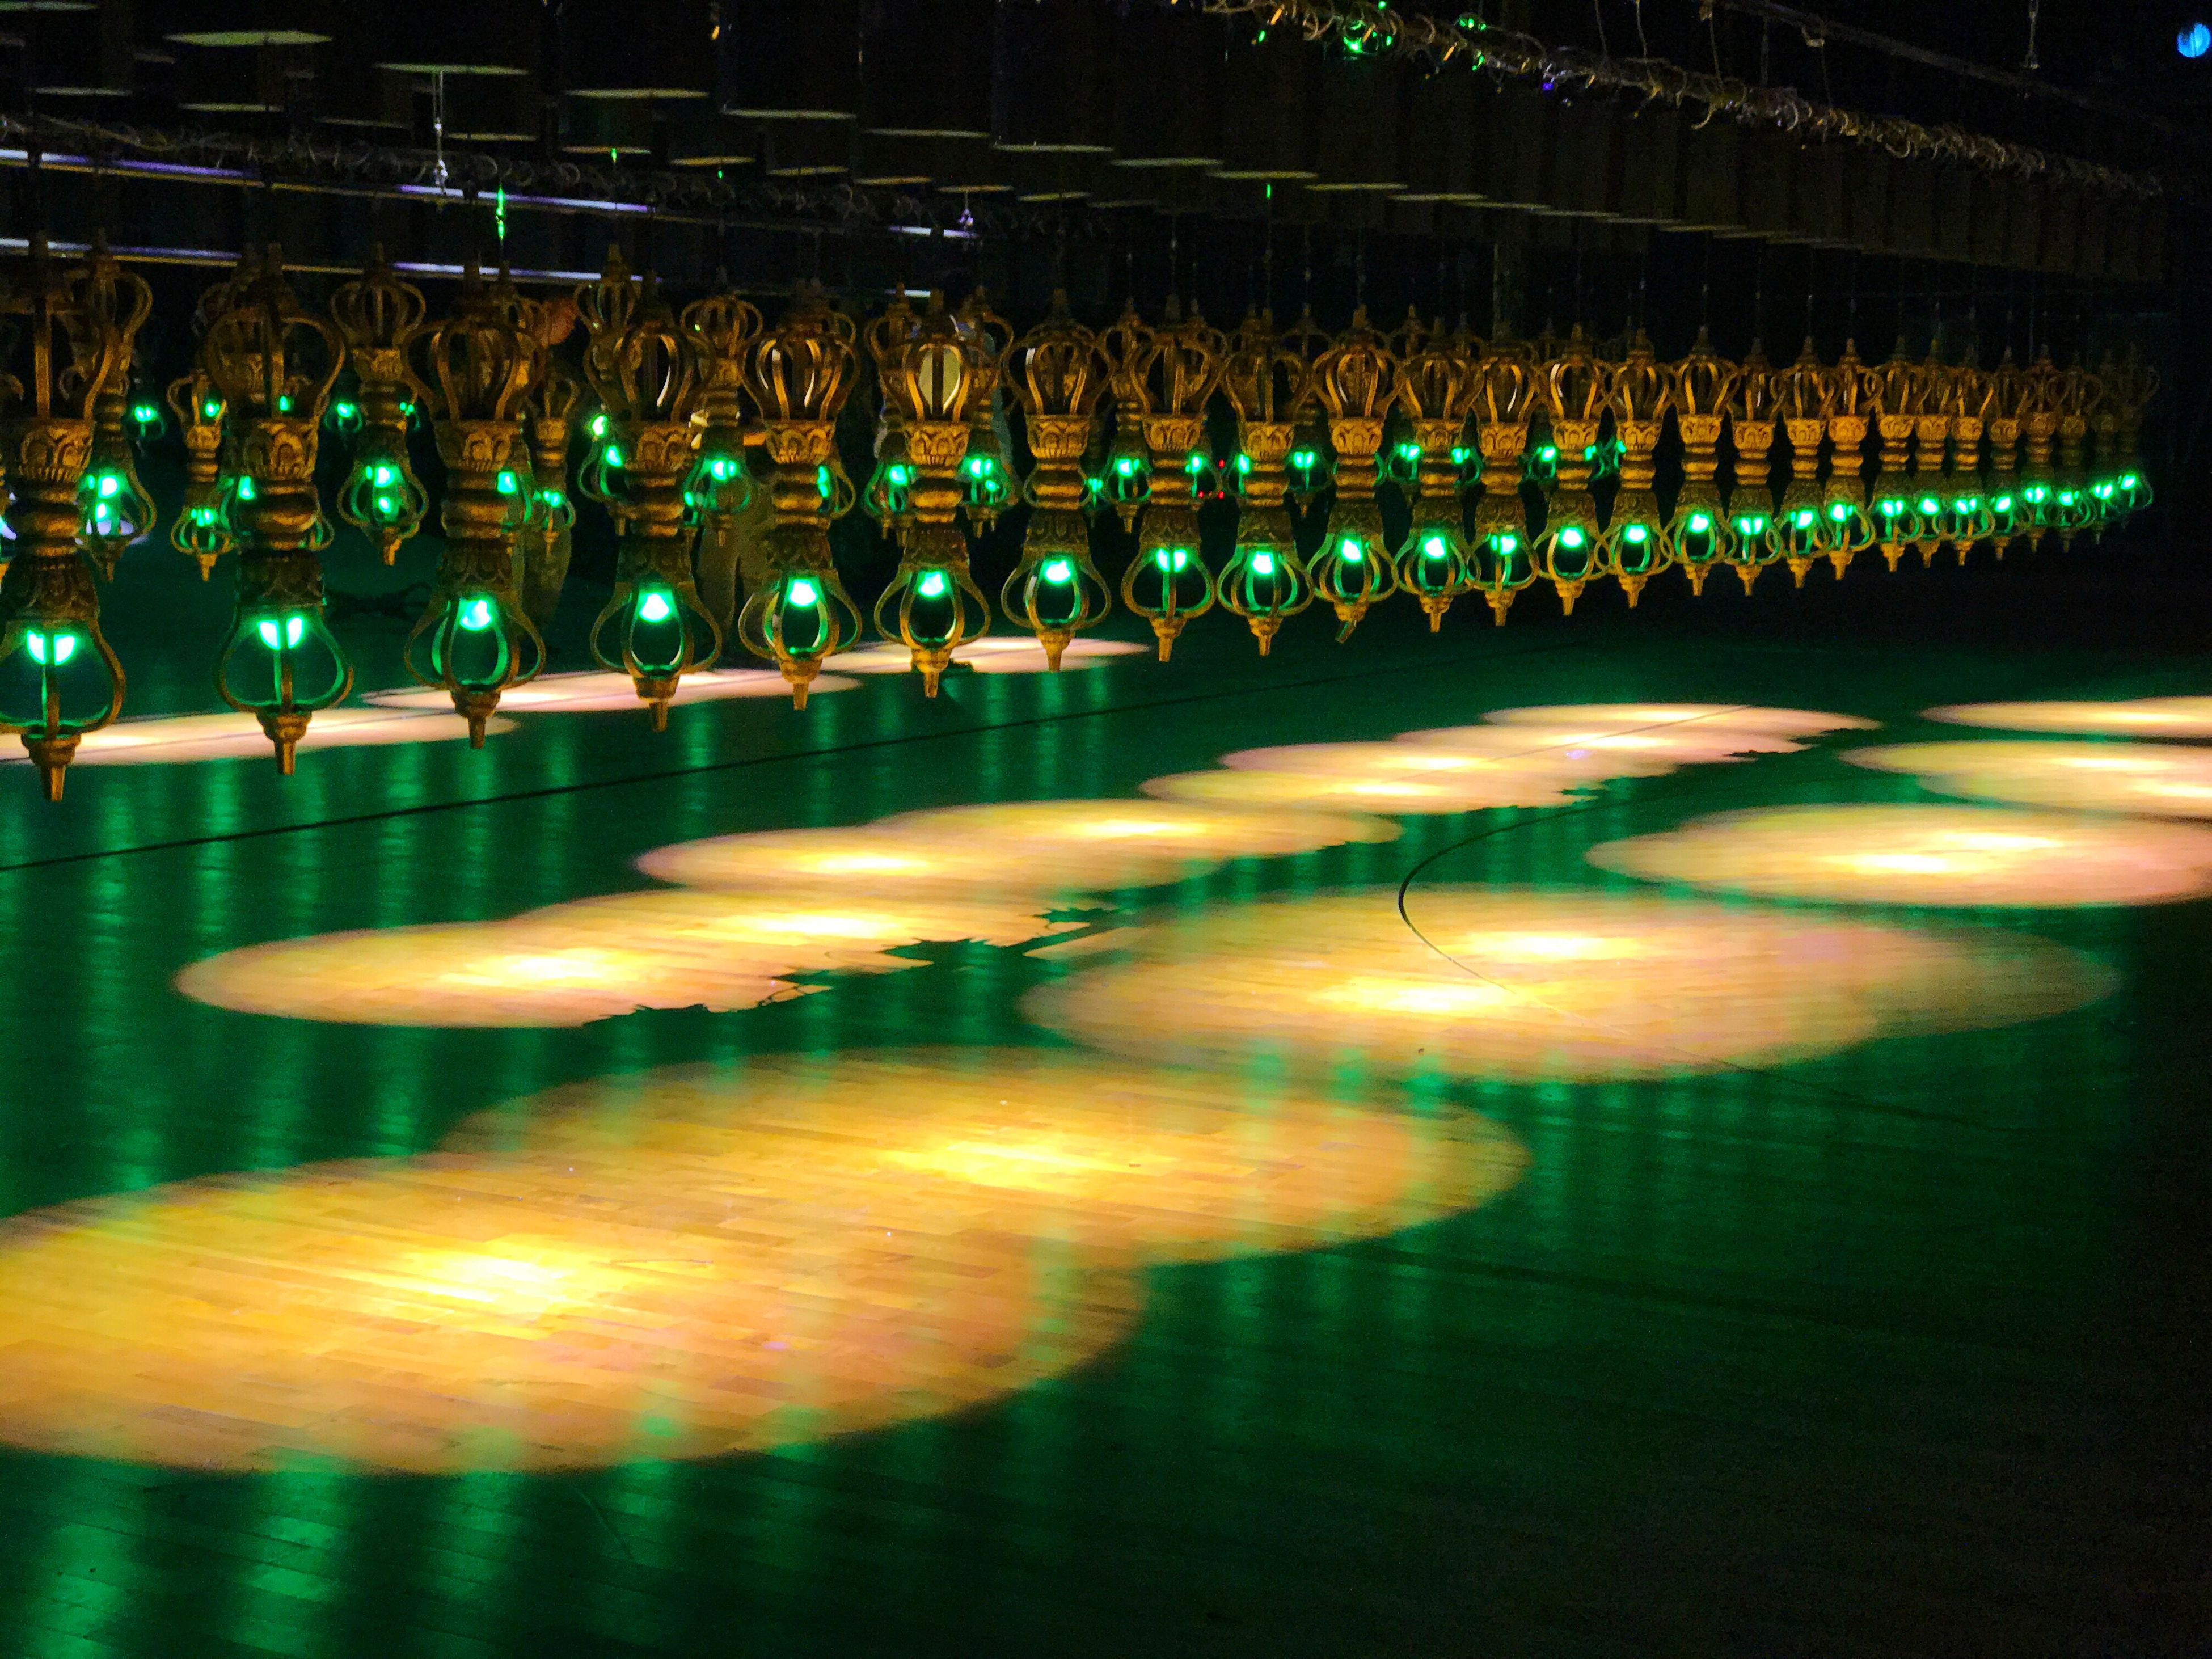 illuminated, reflection, in a row, indoors, no people, large group of objects, night